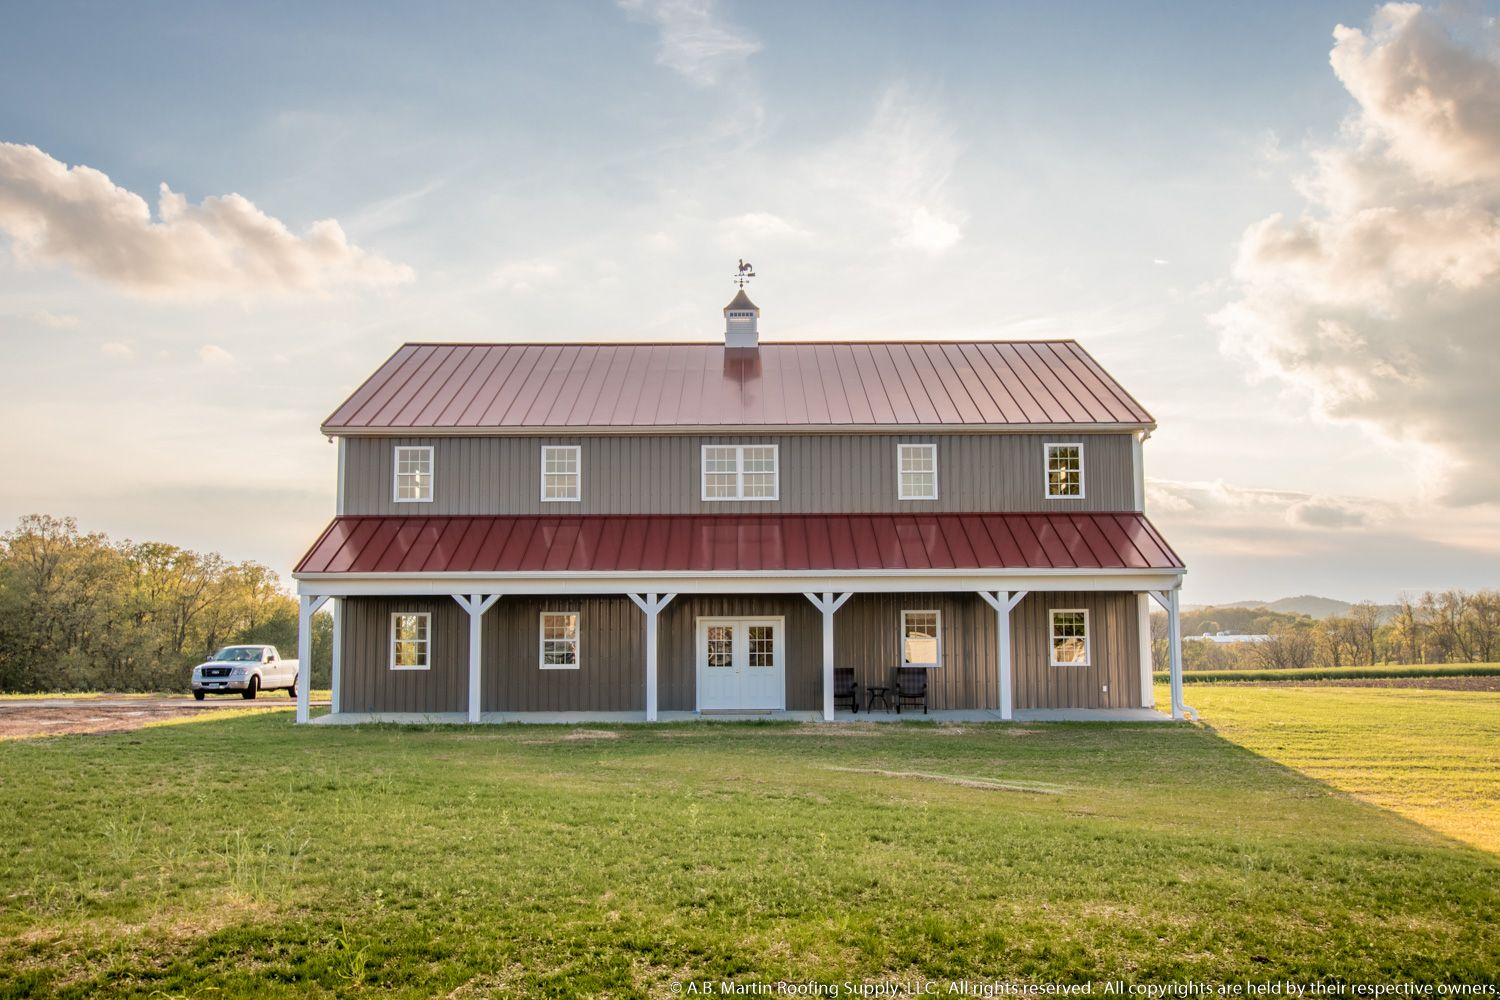 View our photo gallery of garages, horse barns, commercial buildings, ag buildings, and remodeled buildings that use A.B. Martin building materials.